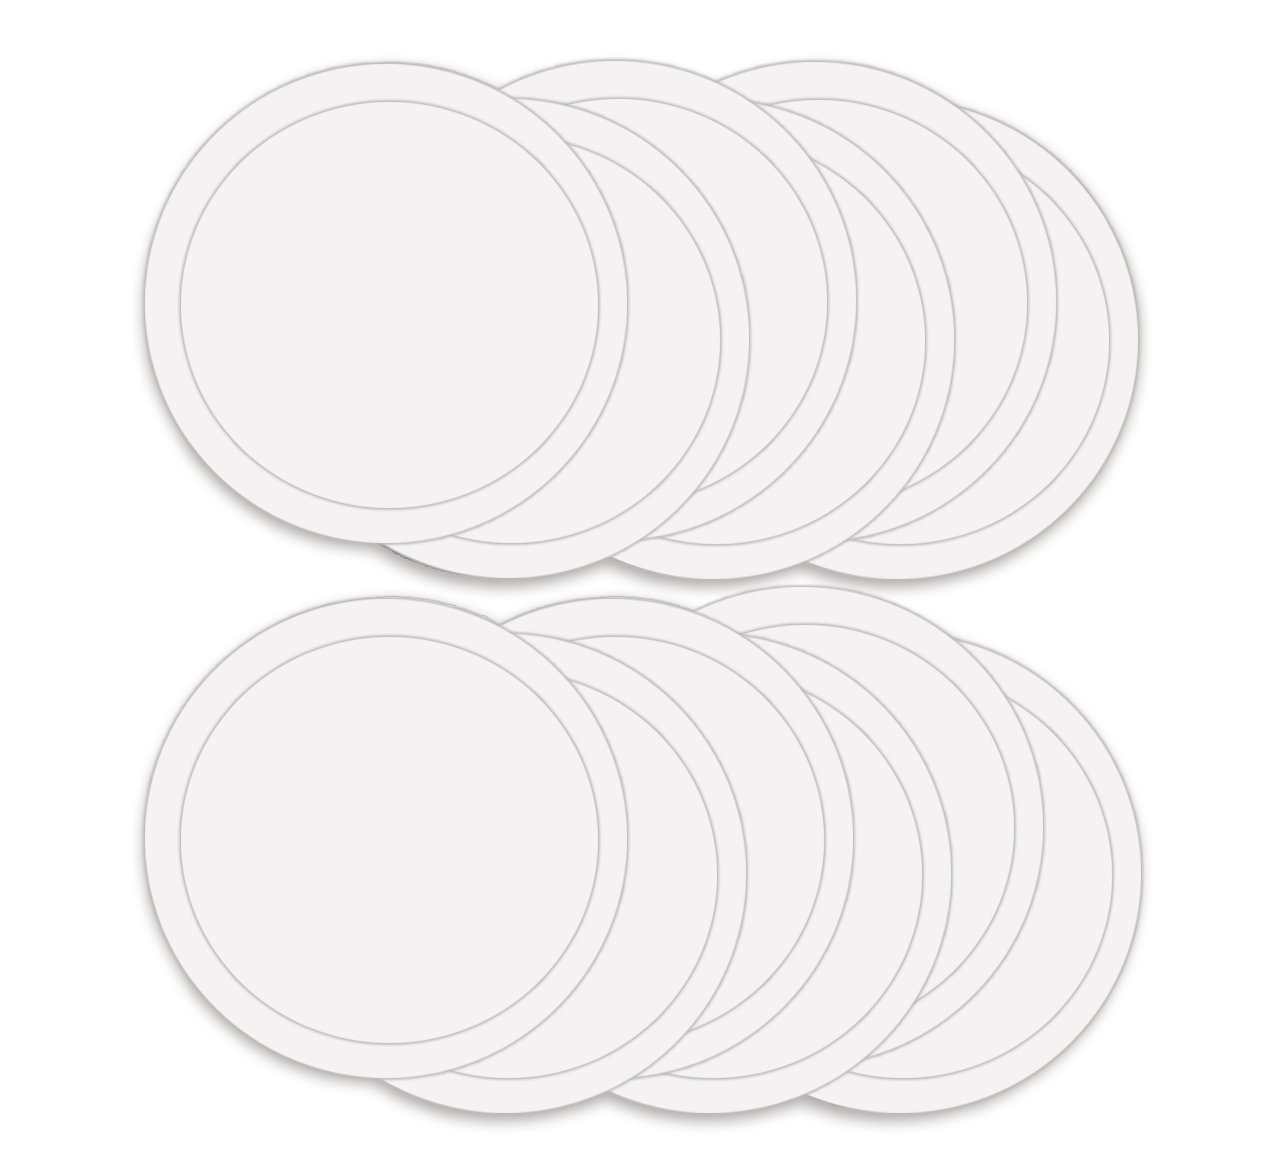 ABN Paint Mixing Cup Lids, 12 Pack – Clear Plastic 32oz Ounce (1qt Quart) Lids